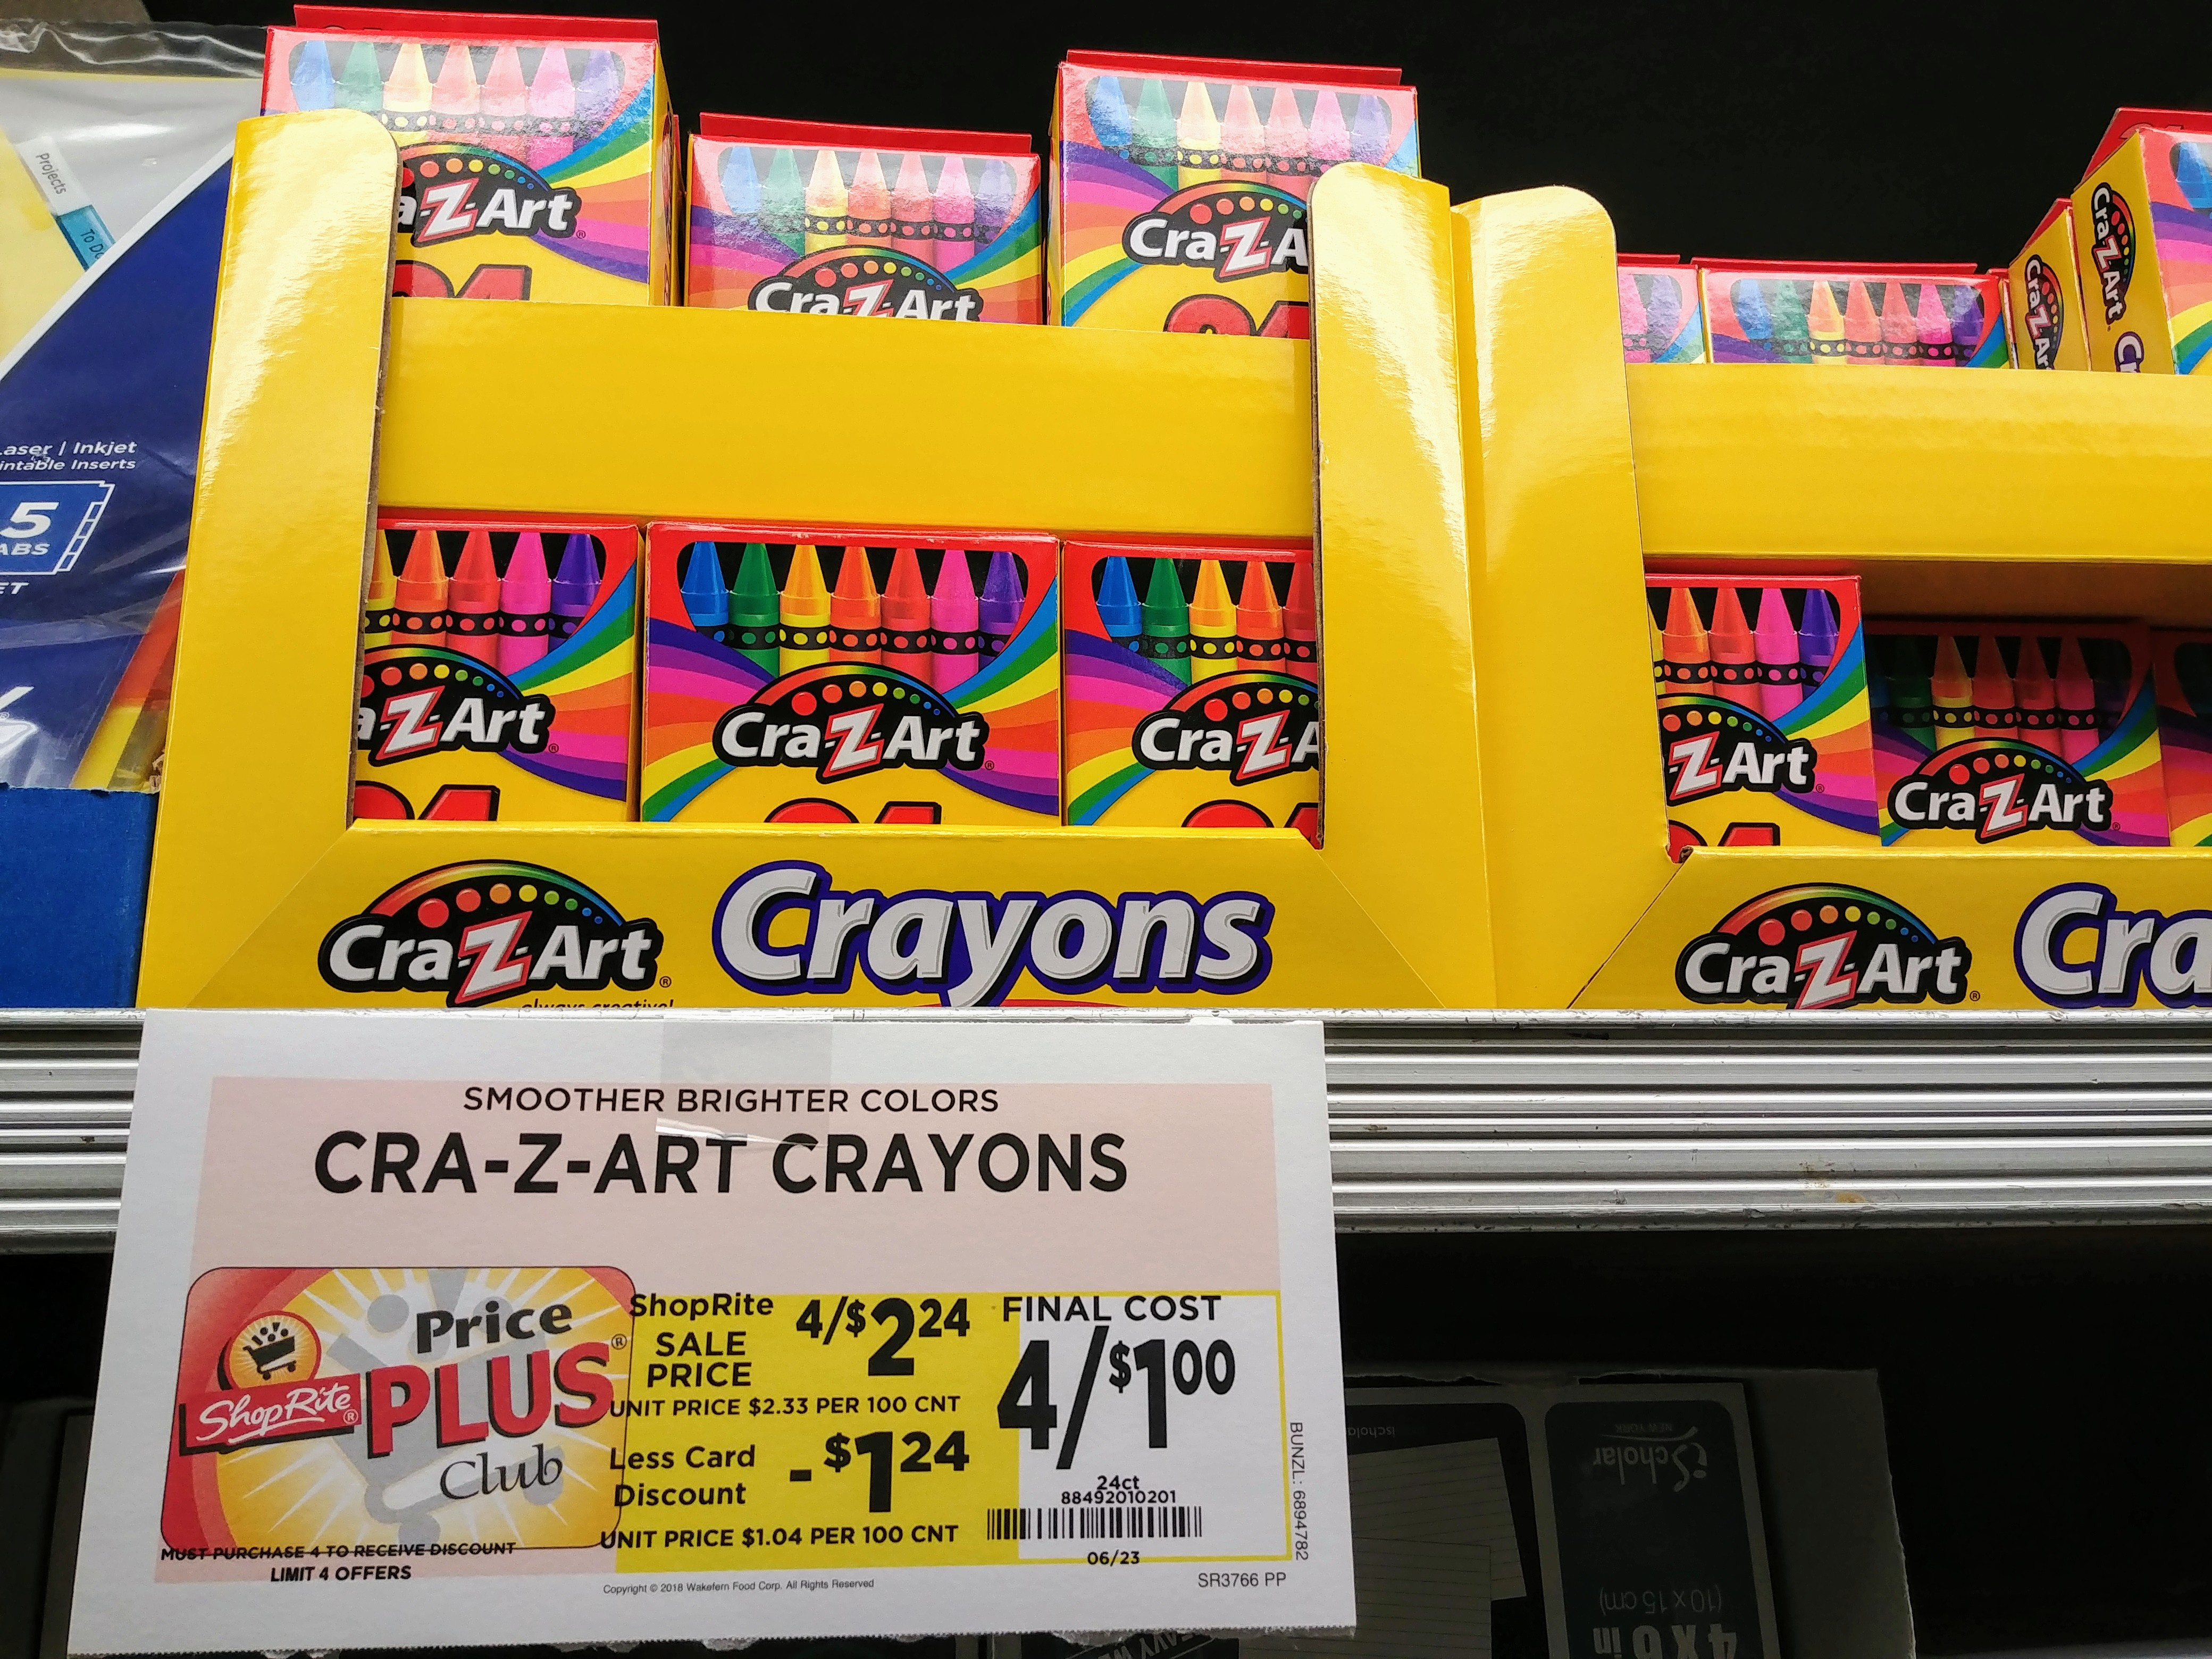 Cra-Z-Art Crayons at Shoprite